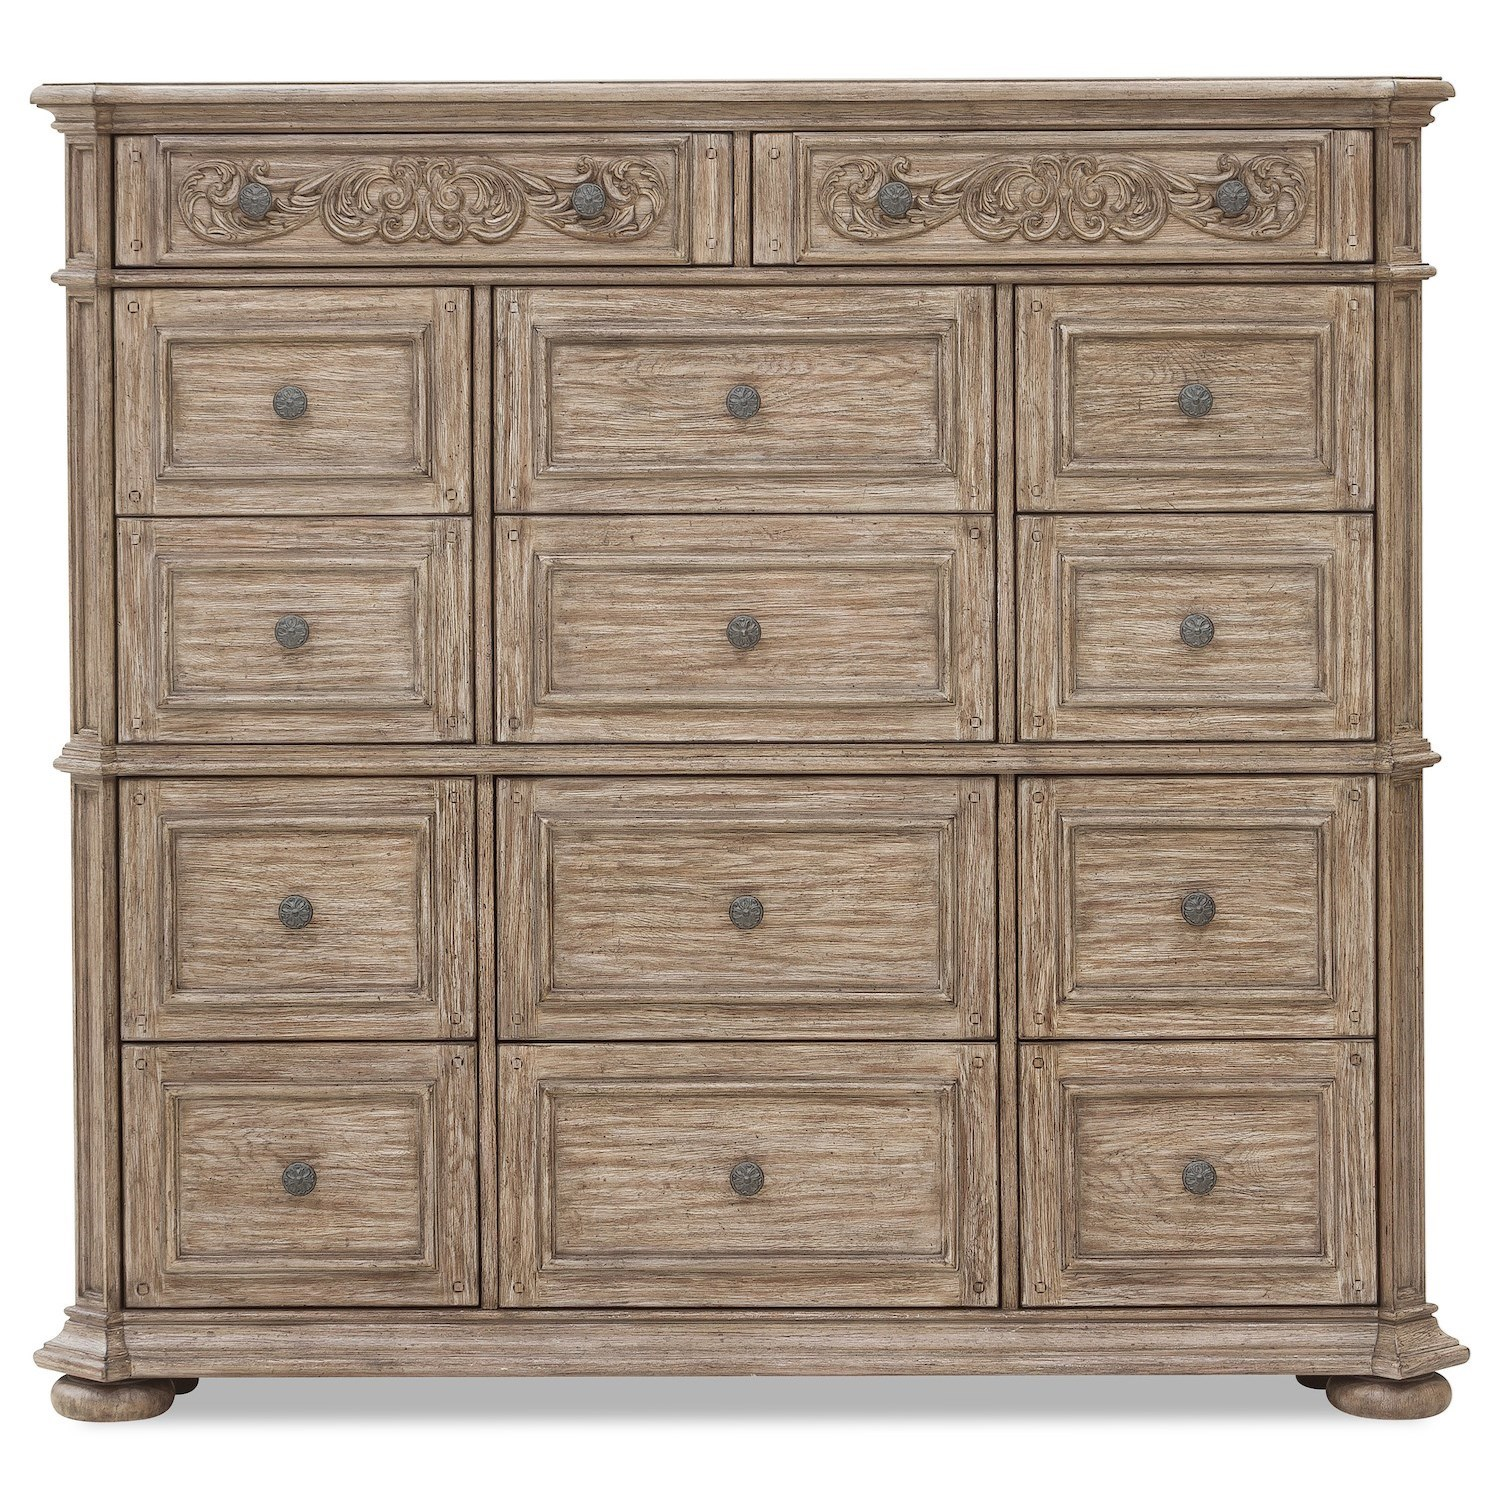 Cardoso Master Chest by Klaussner International at Northeast Factory Direct